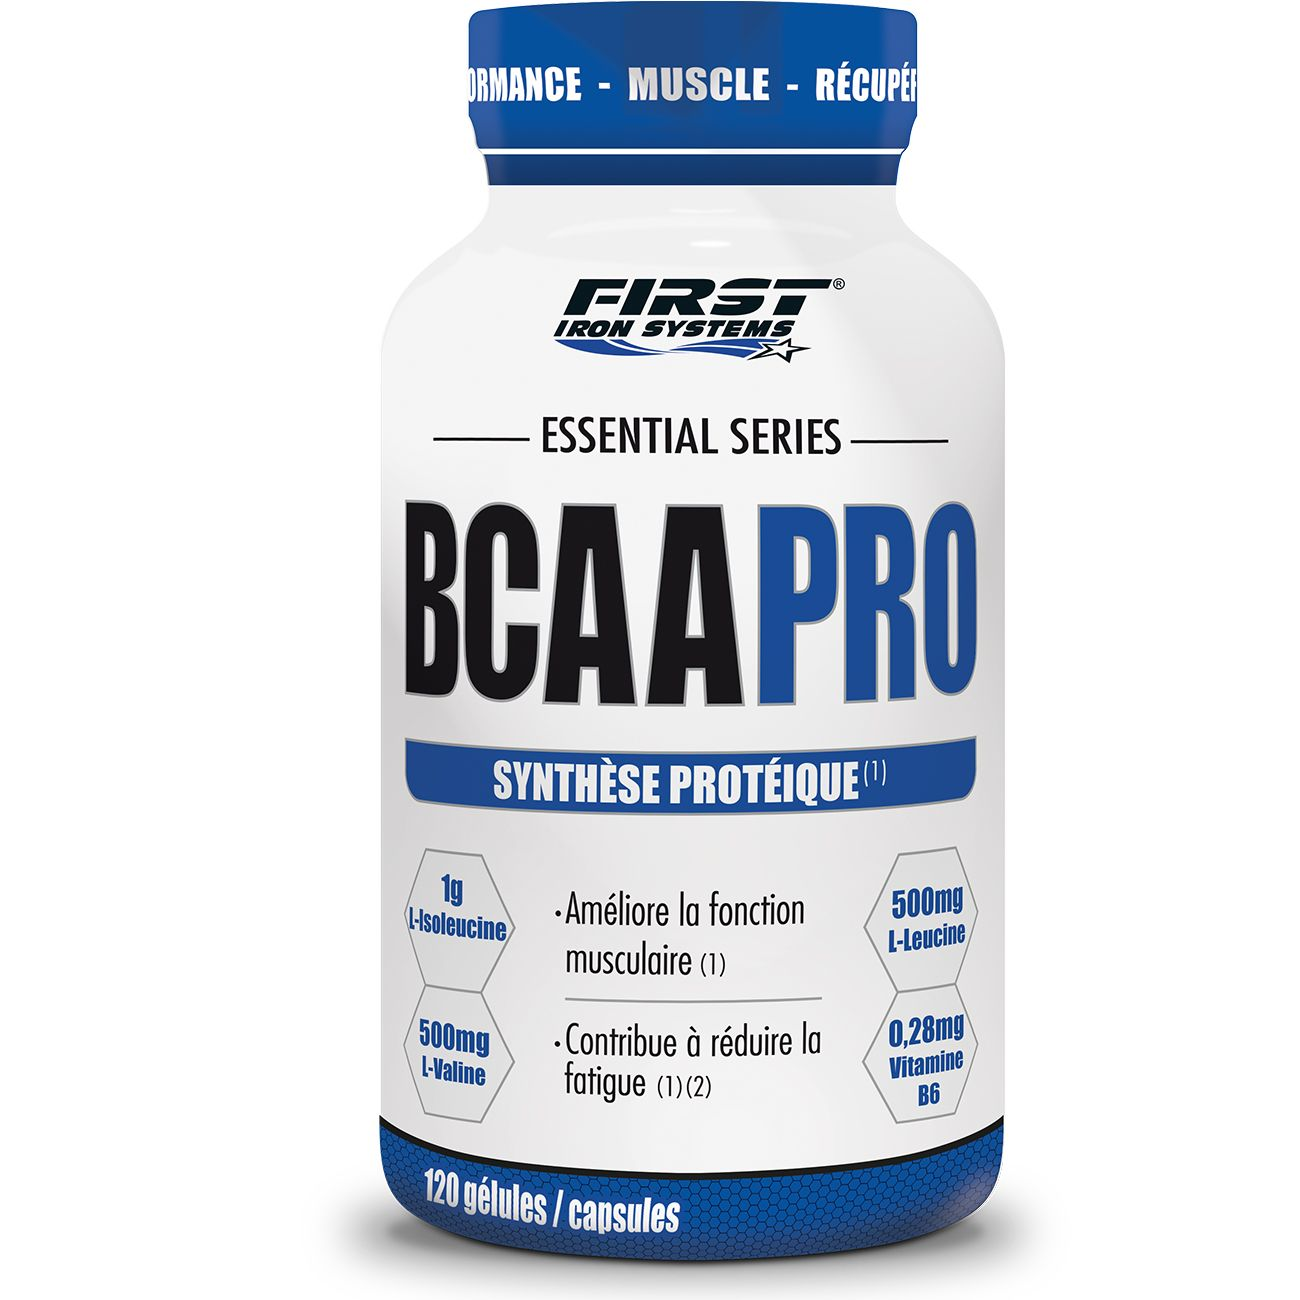 Prise de muscle Musculation  FIRST IRON SYSTEMS BCAAPRO